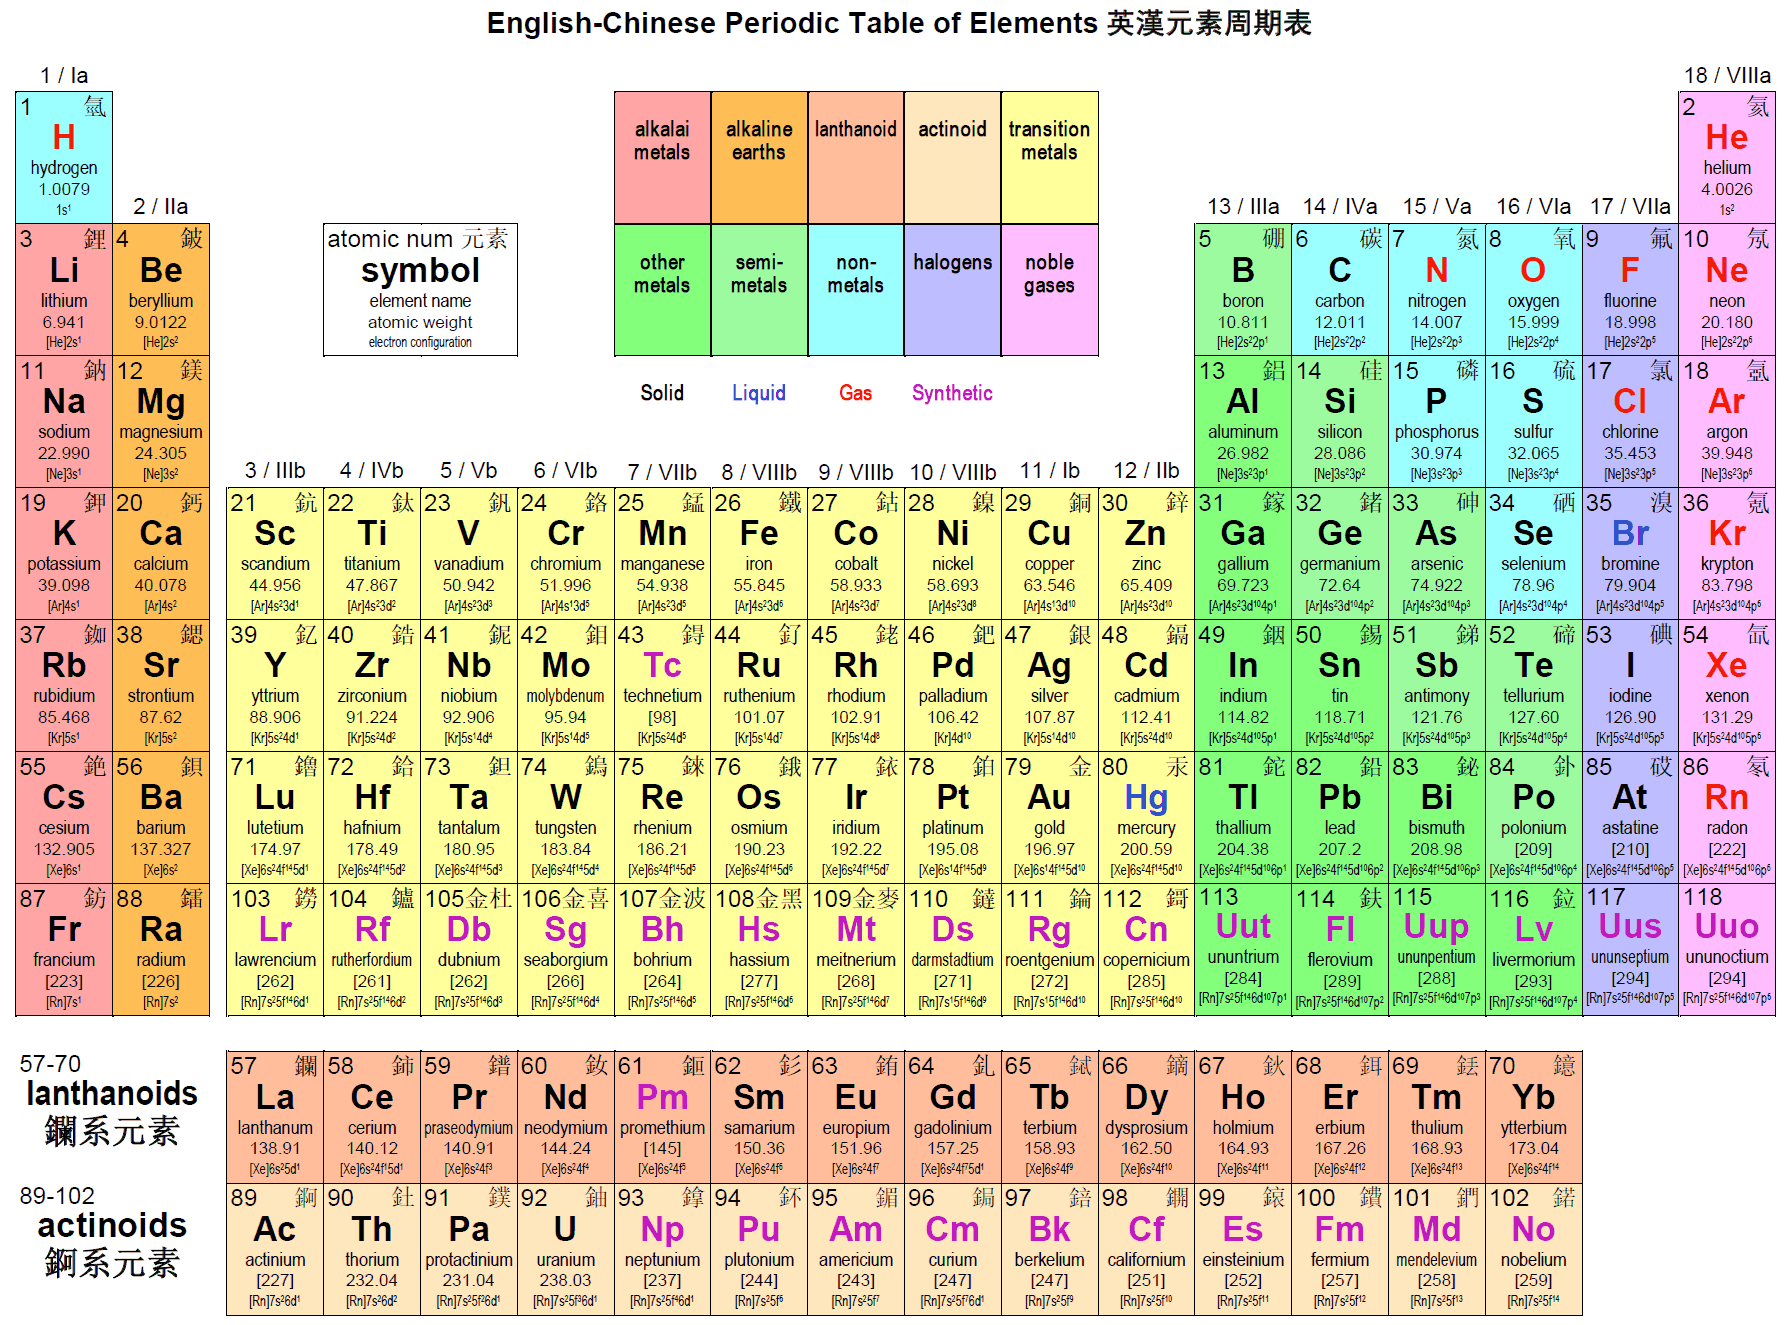 periodic table of elements chart version of english chinese periodic table of elements pdf 110k